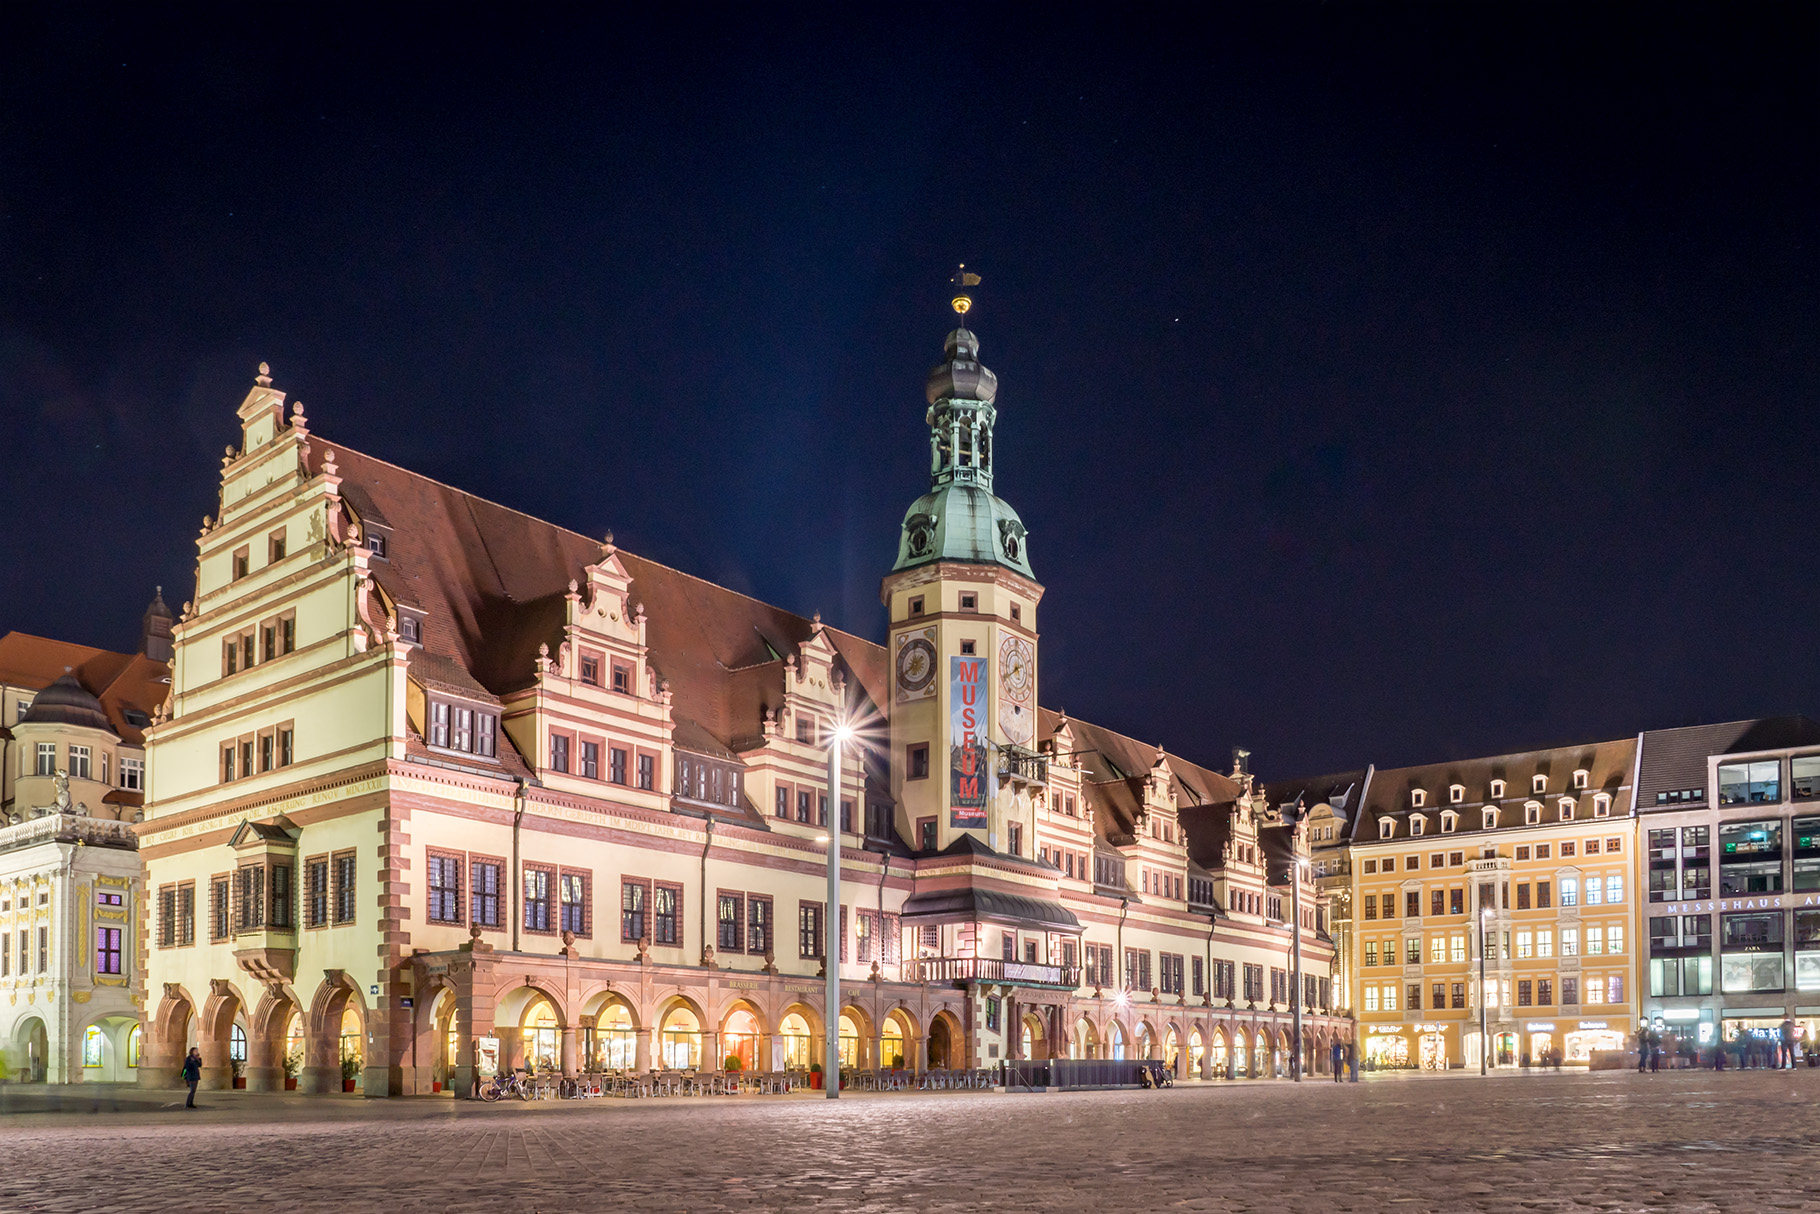 Altes Rathaus, Germany